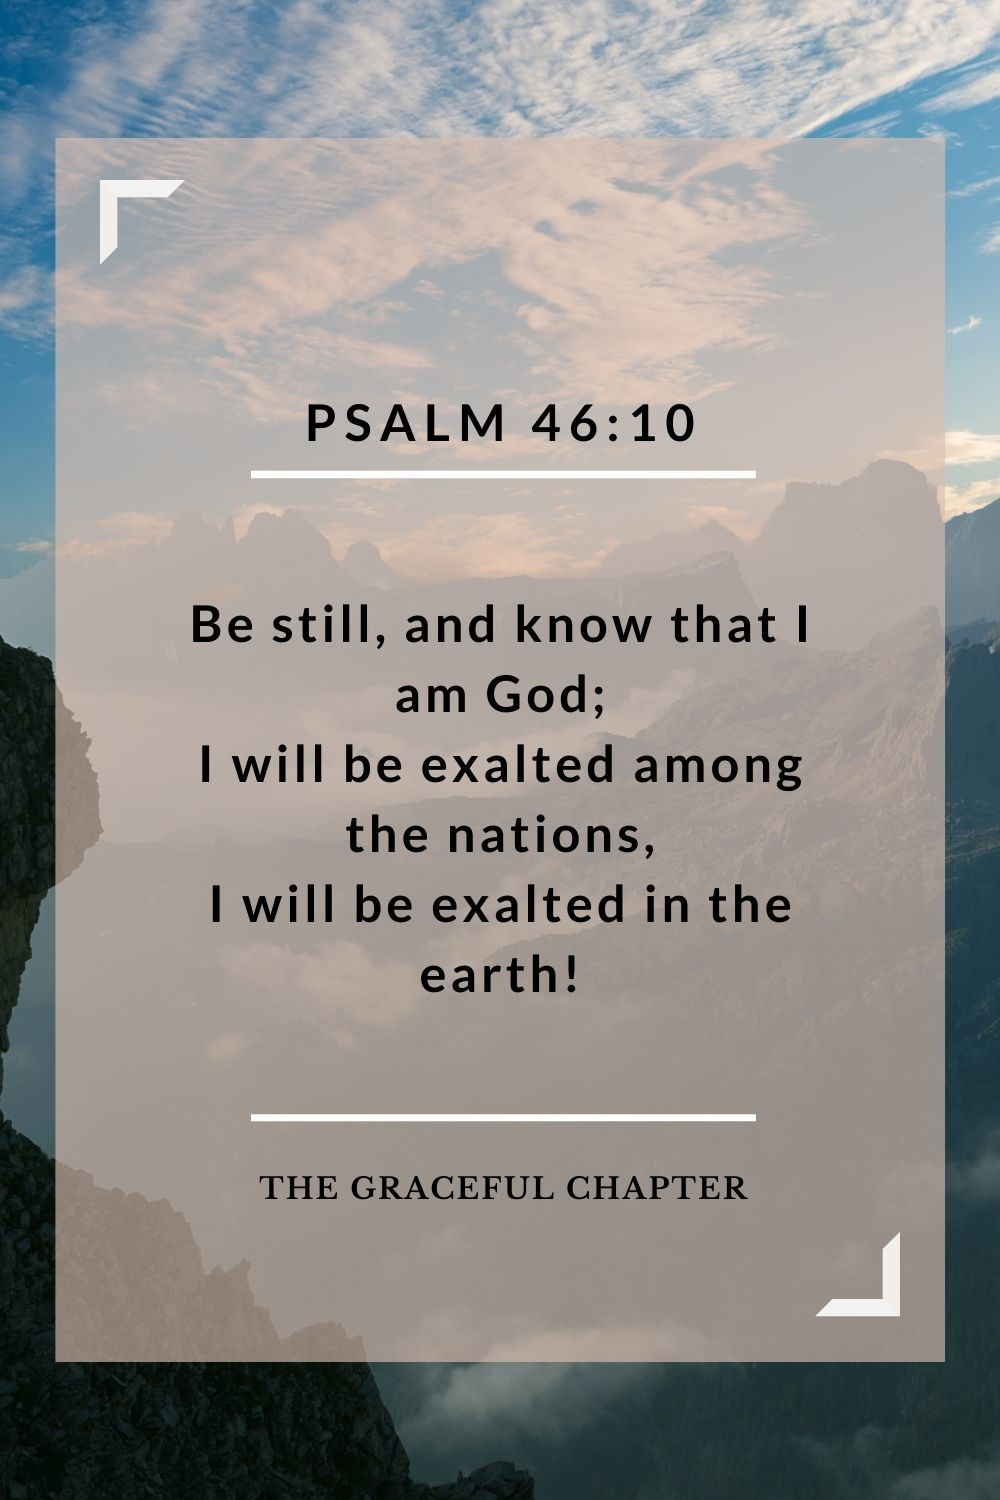 Be still, and know that I am God; I will be exalted among the nations, I will be exalted in the earth! Psalm 46:10